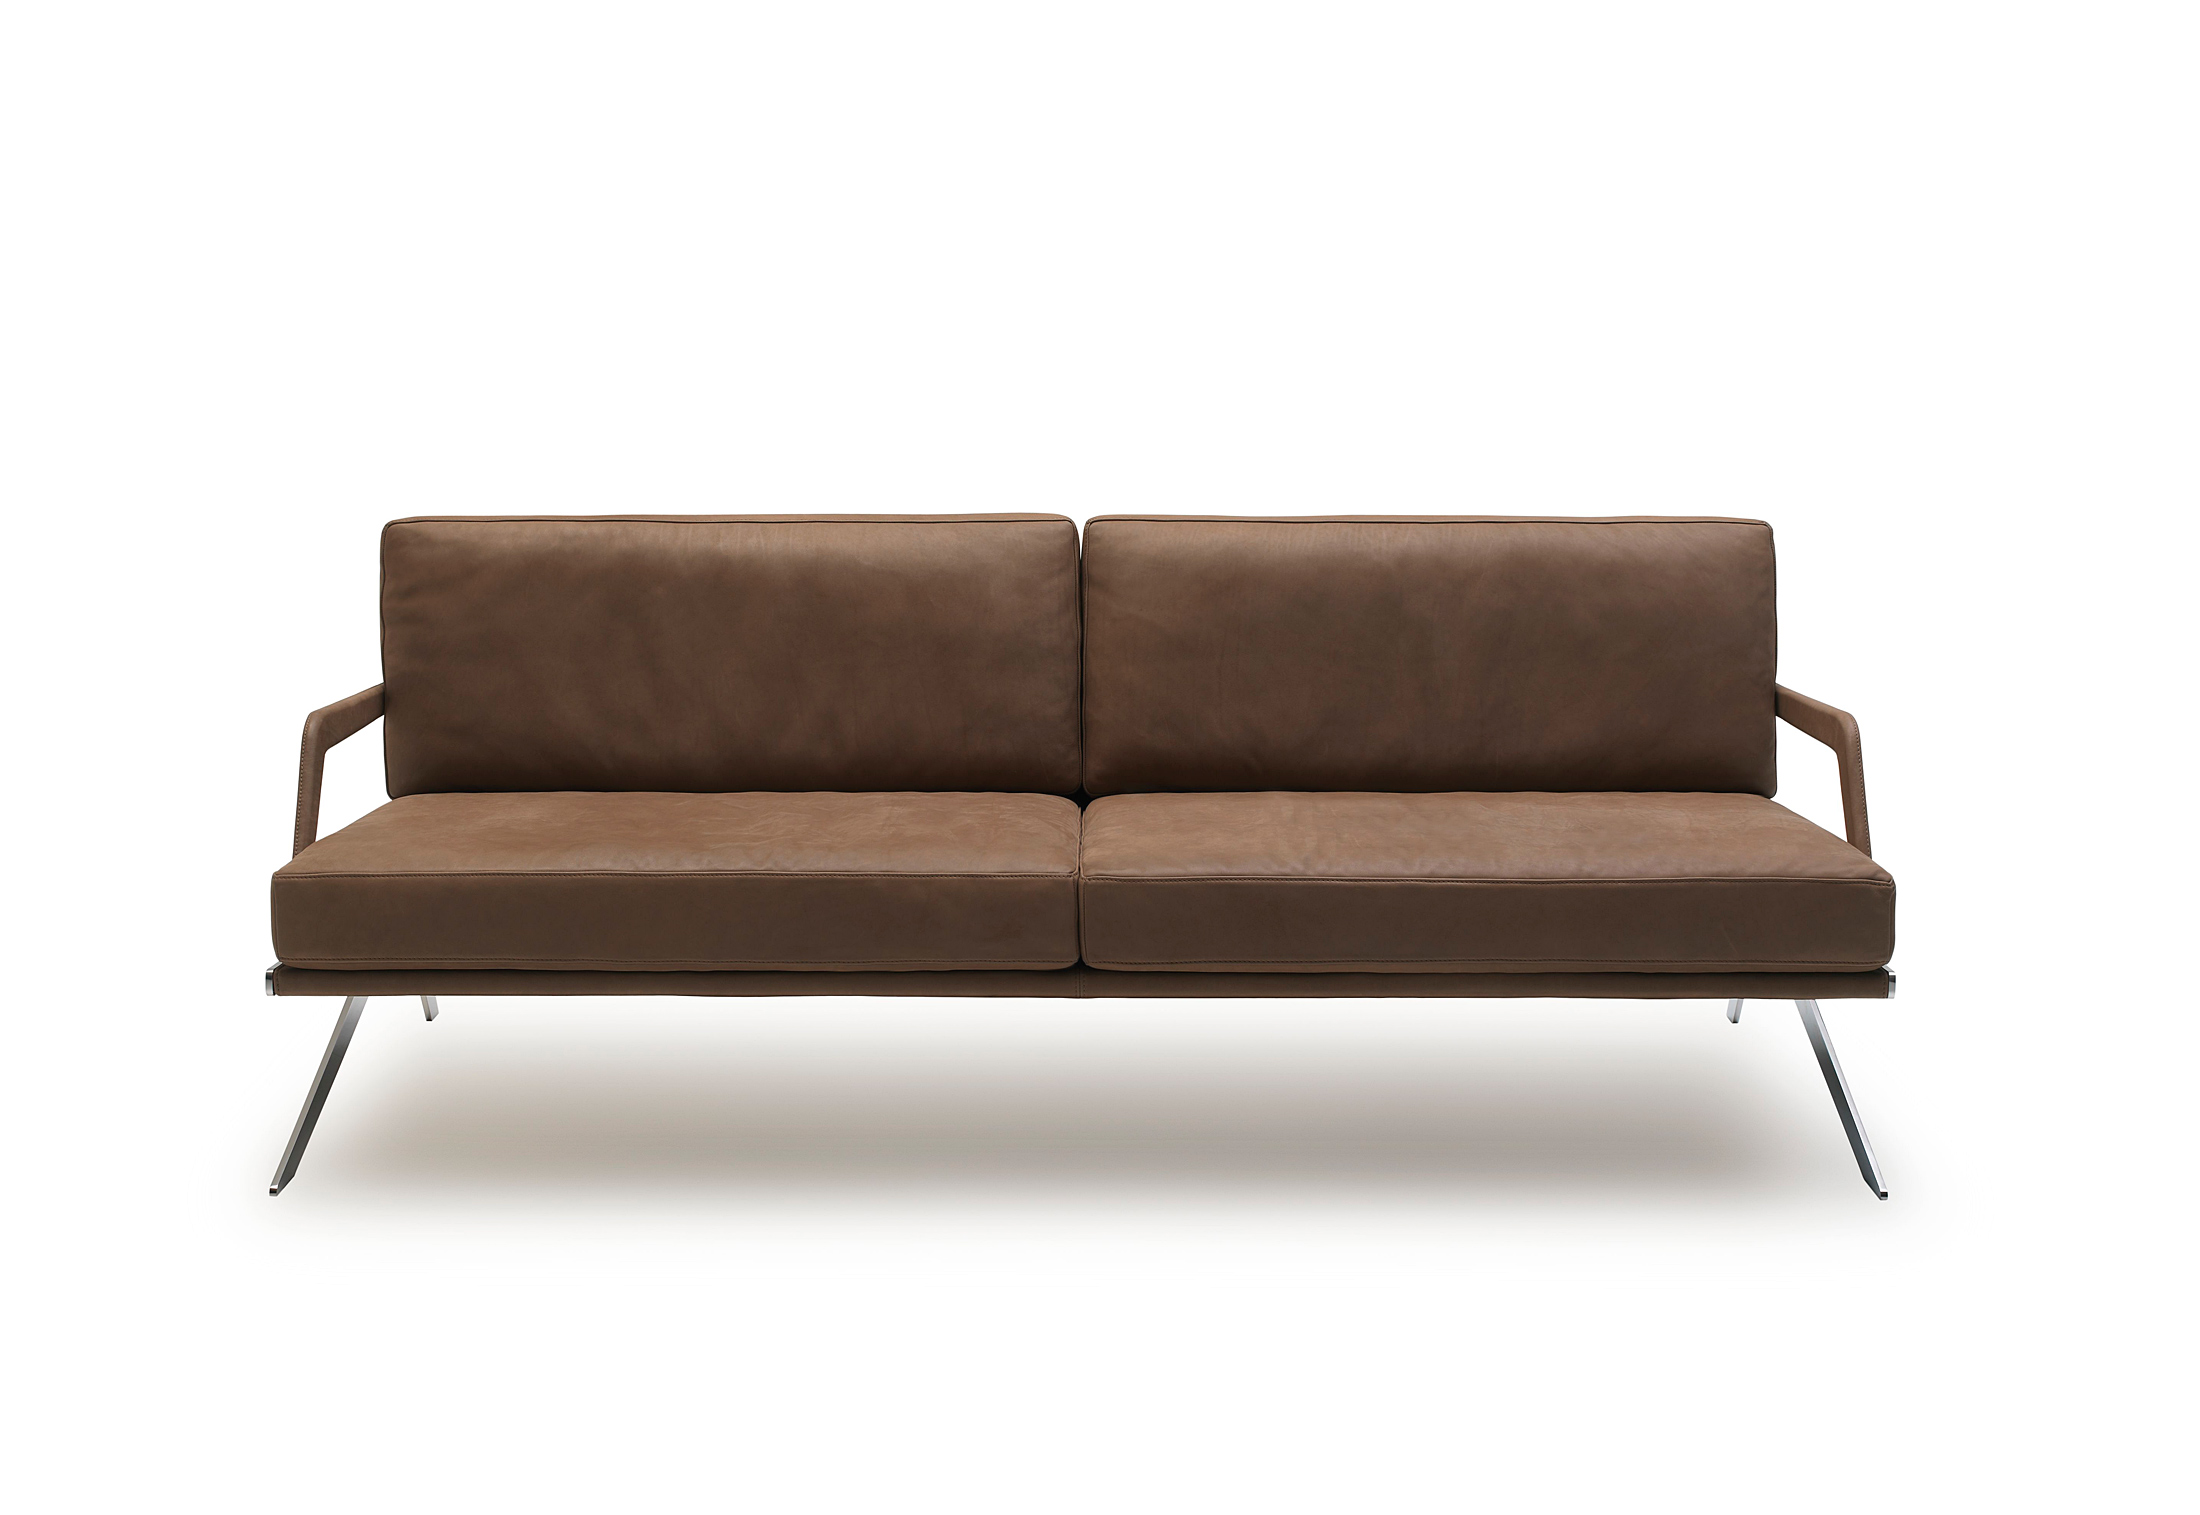 Ds 60 Sofa By De Sede Stylepark